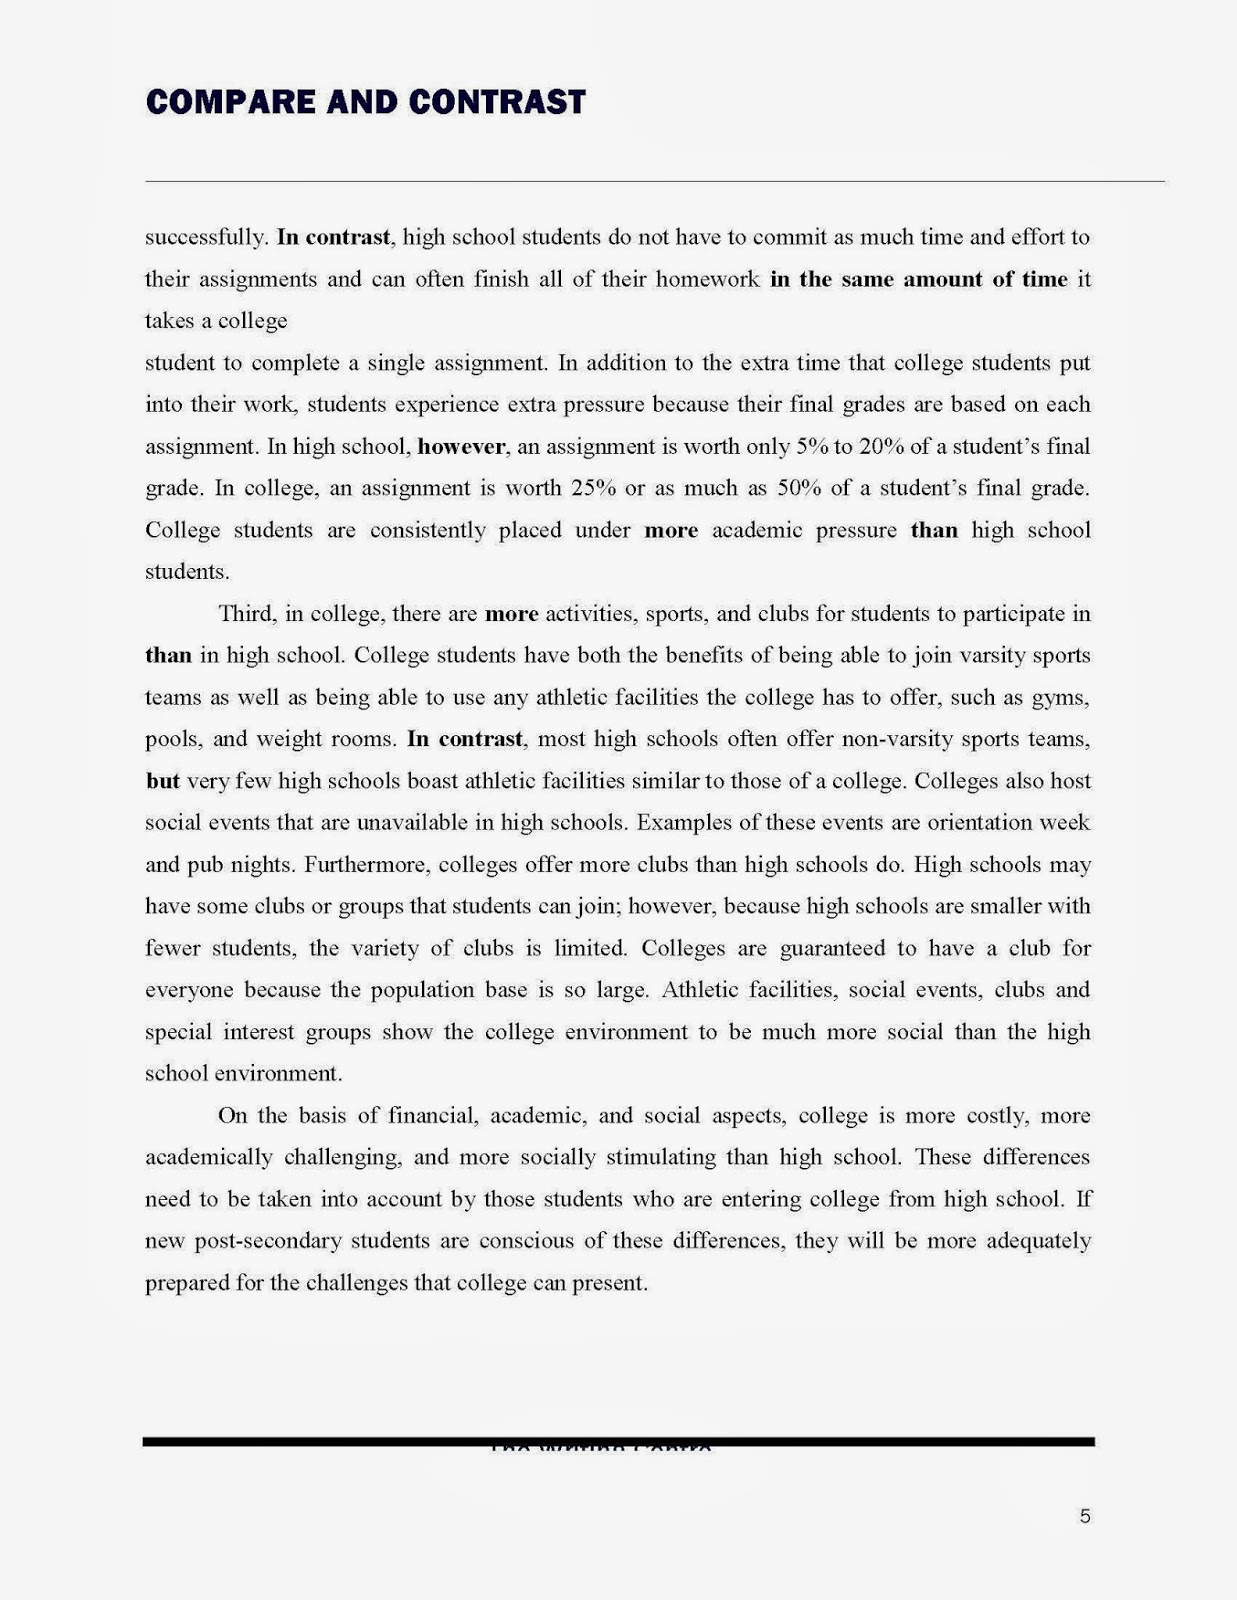 wwi essay a bluestocking guide world war i essay on the giver by  essay on the giver by lois lowry essay on the book the giver by compare and